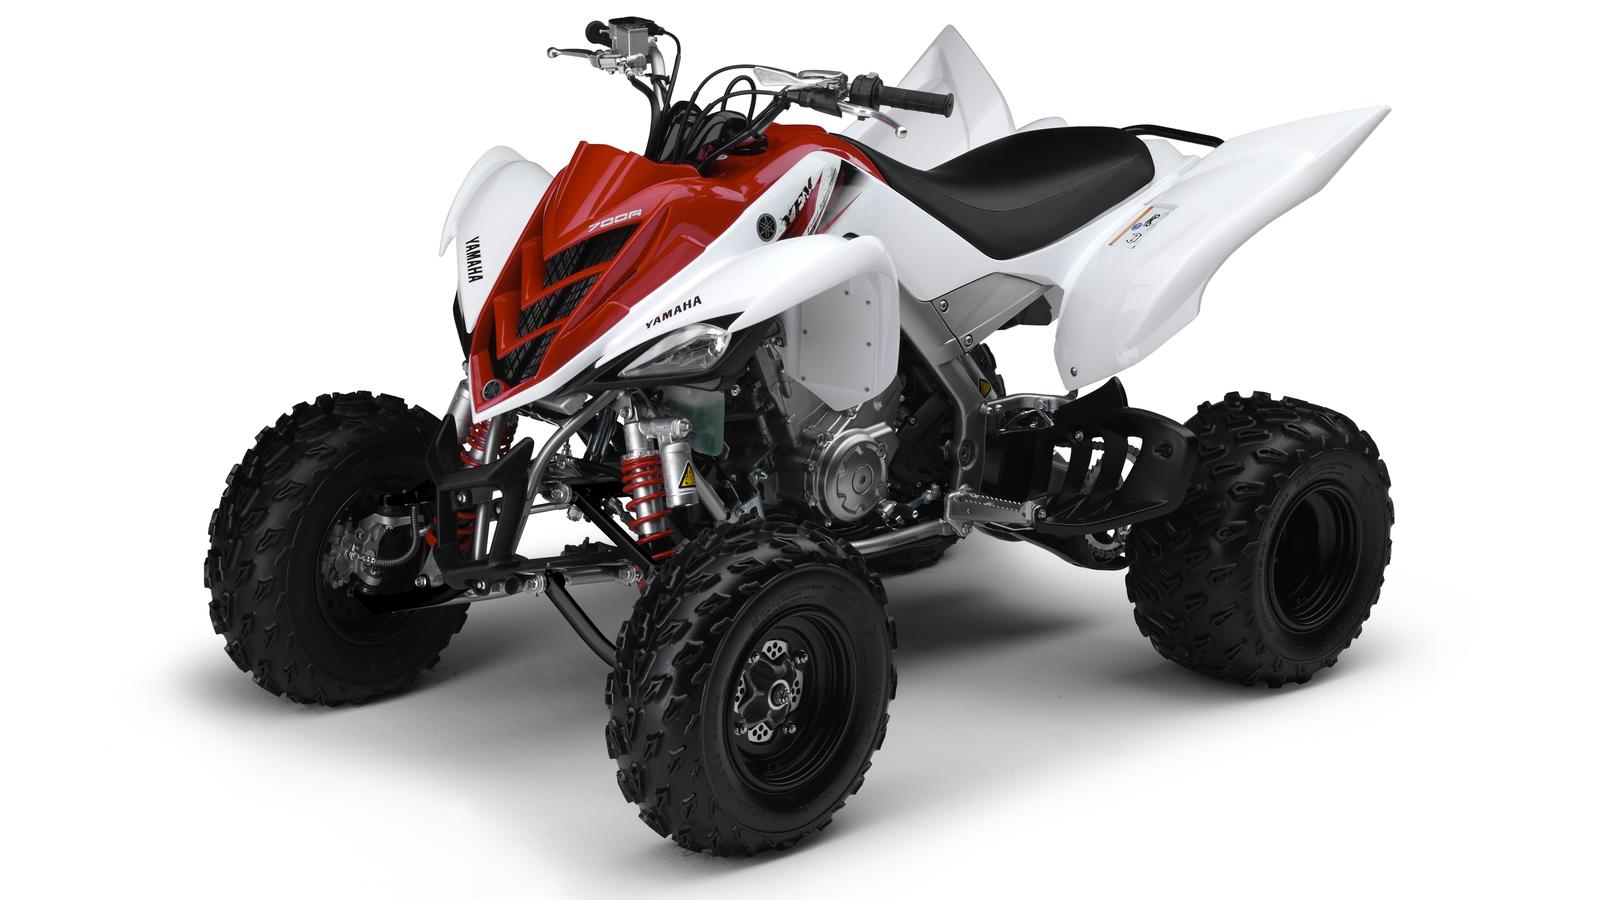 YAMAHA YFM 700 R Raptor  2011 photo 4